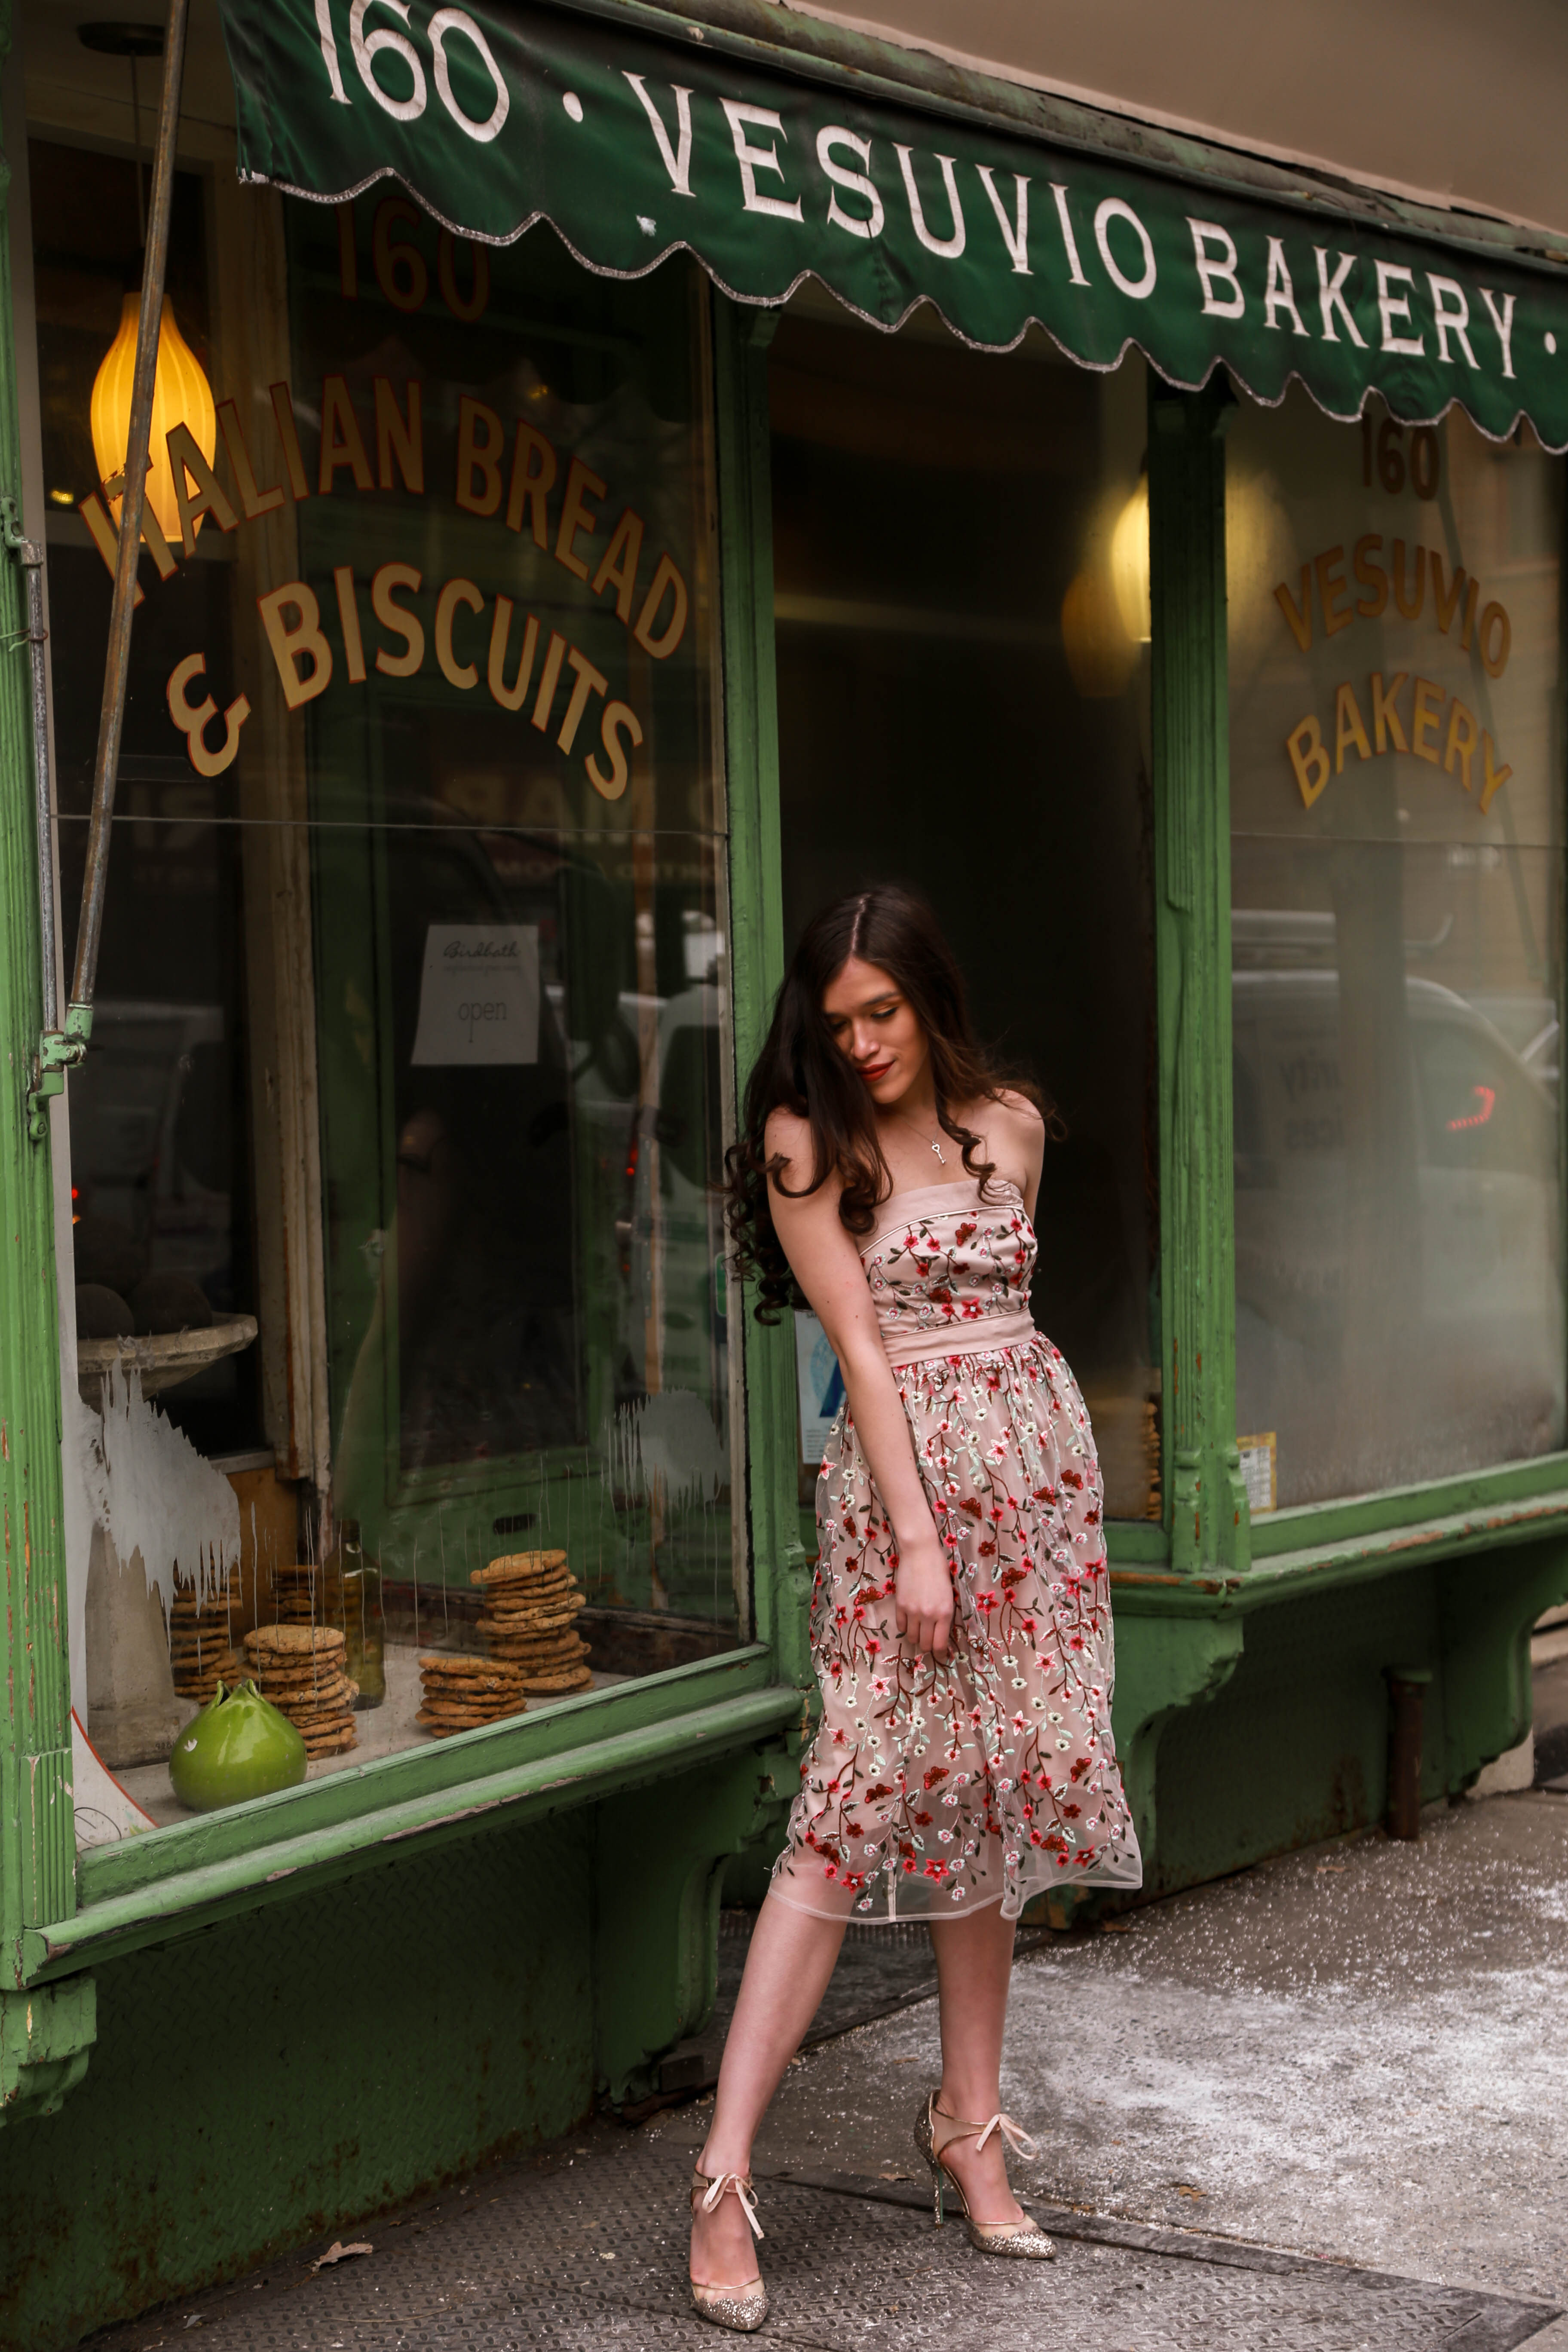 Eva Phan of Eva Darling at Vesuvio Bakery Instagrammable olopcation in SoHo Instagram worthy Lulu's tulle embroidered tea length midi dress romantic feminine style ootd inspiration